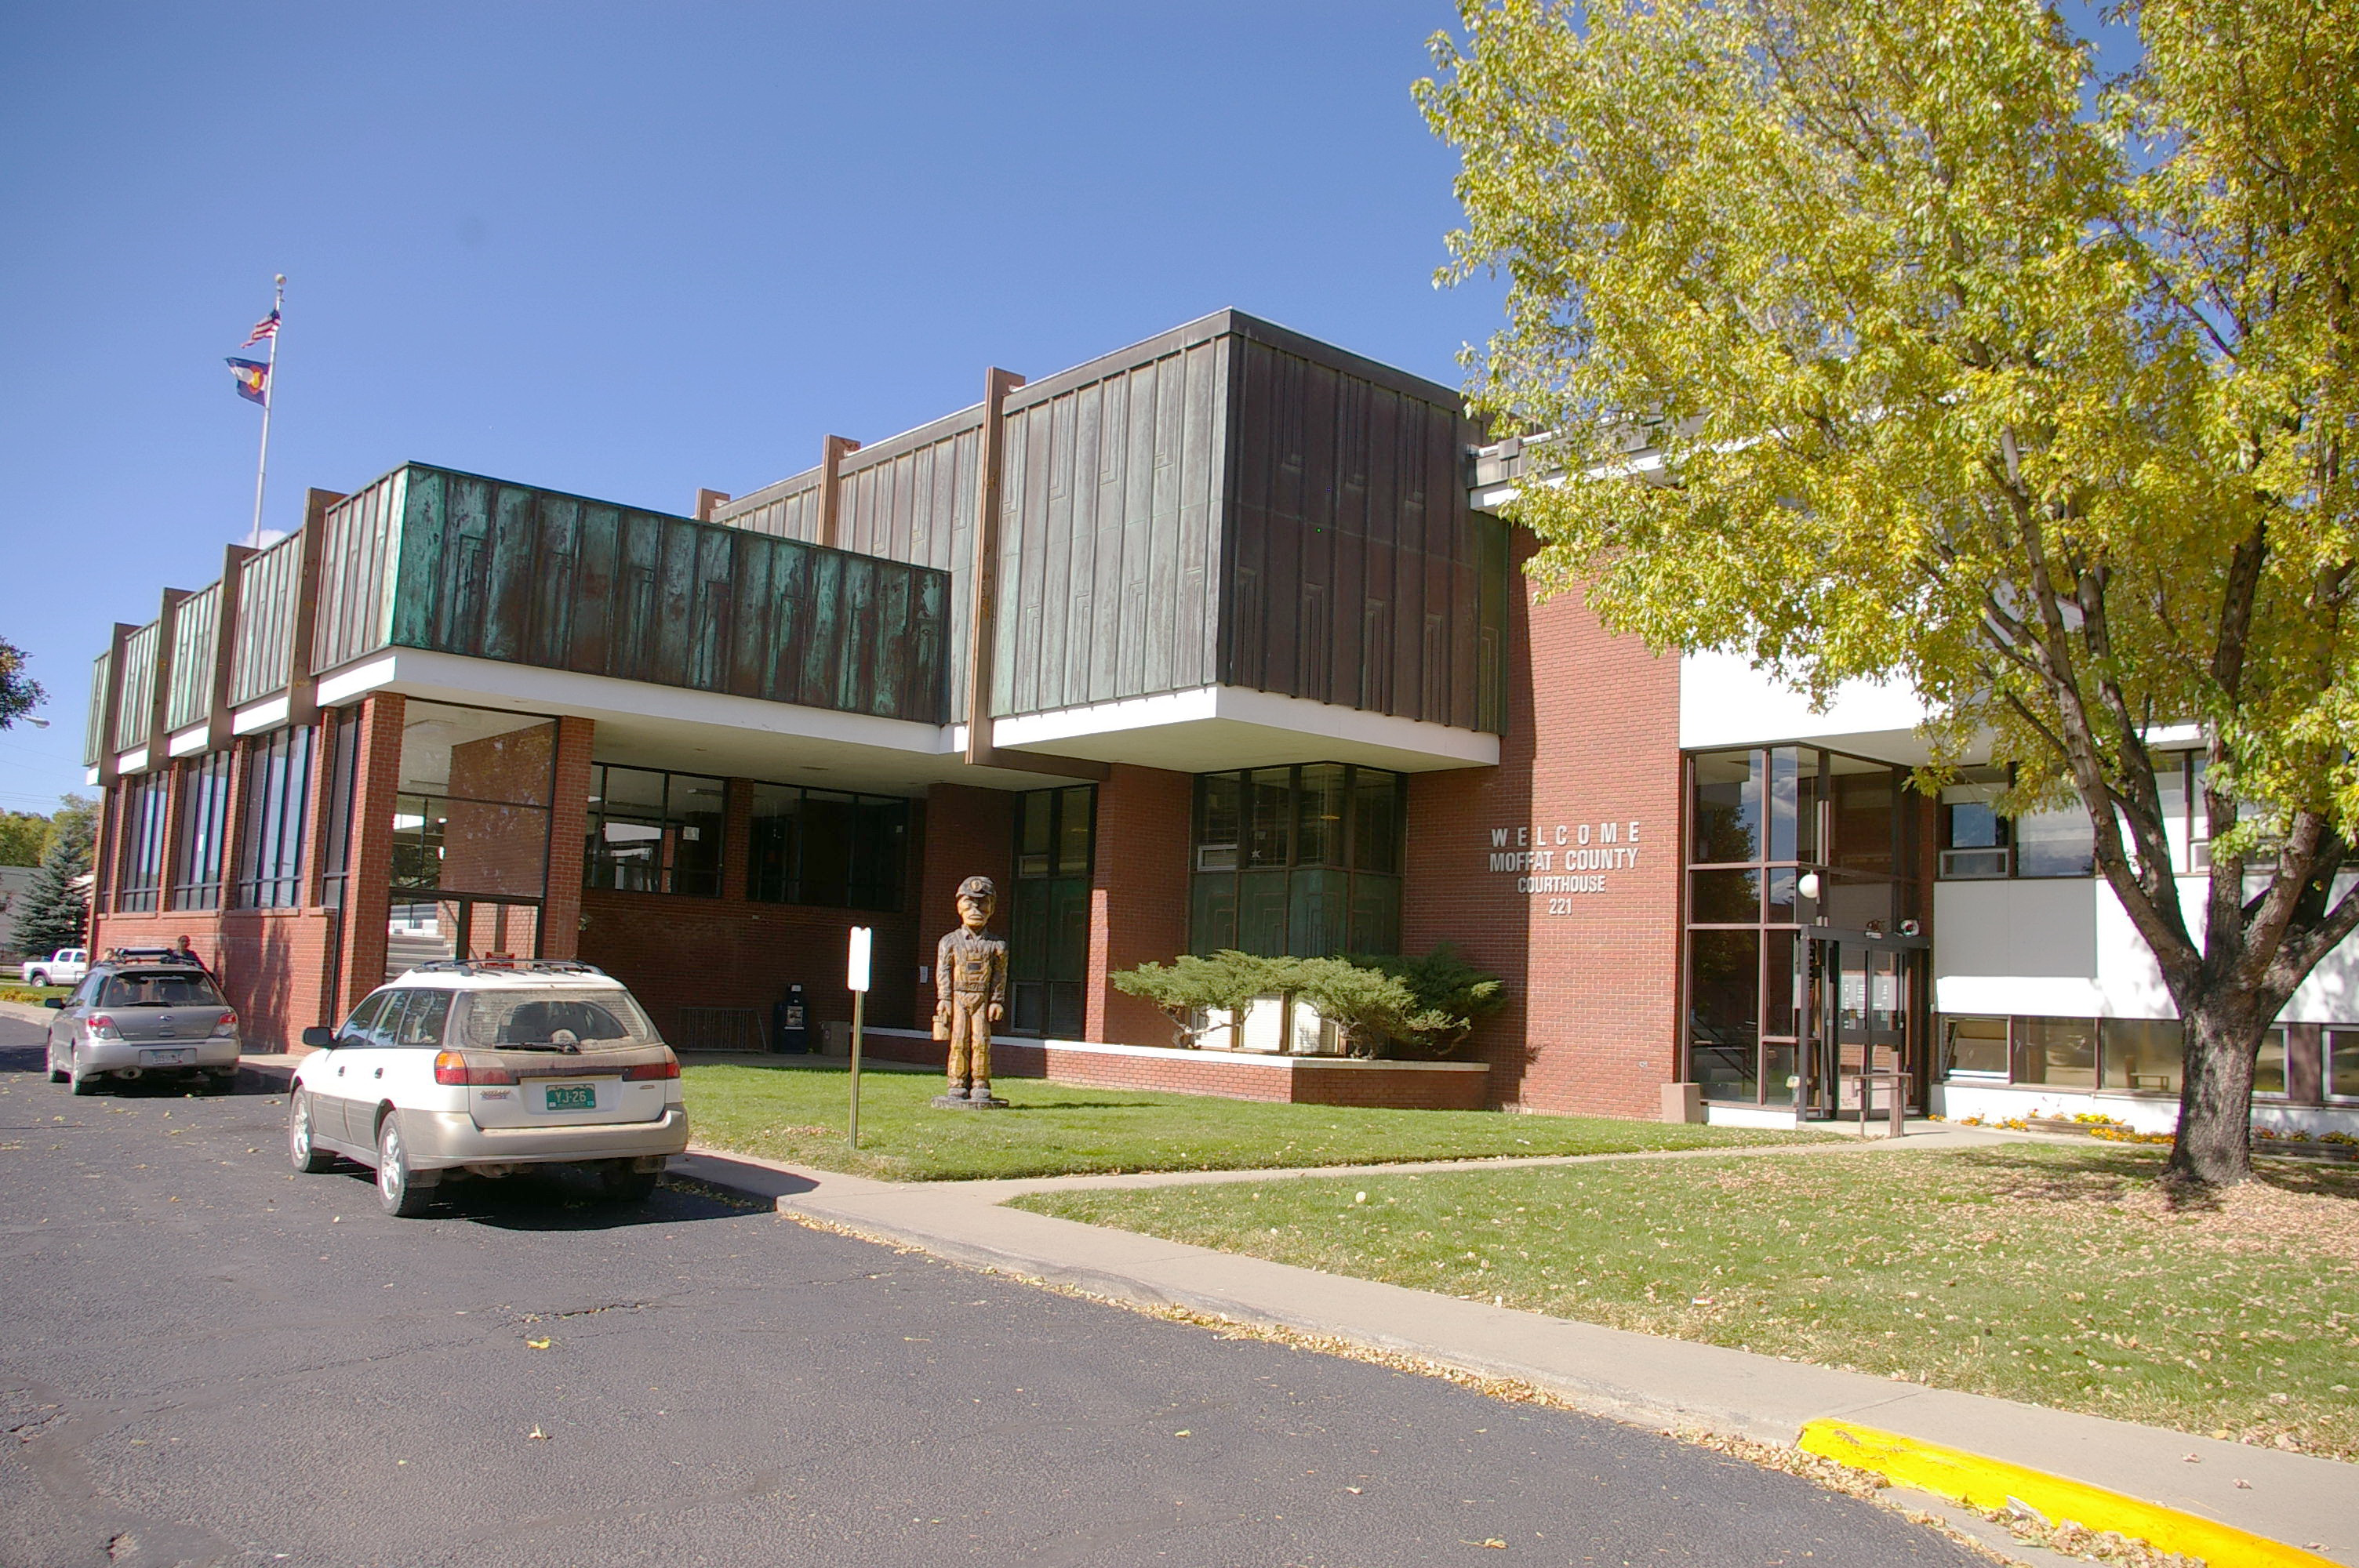 Moffat County Us Courthouses